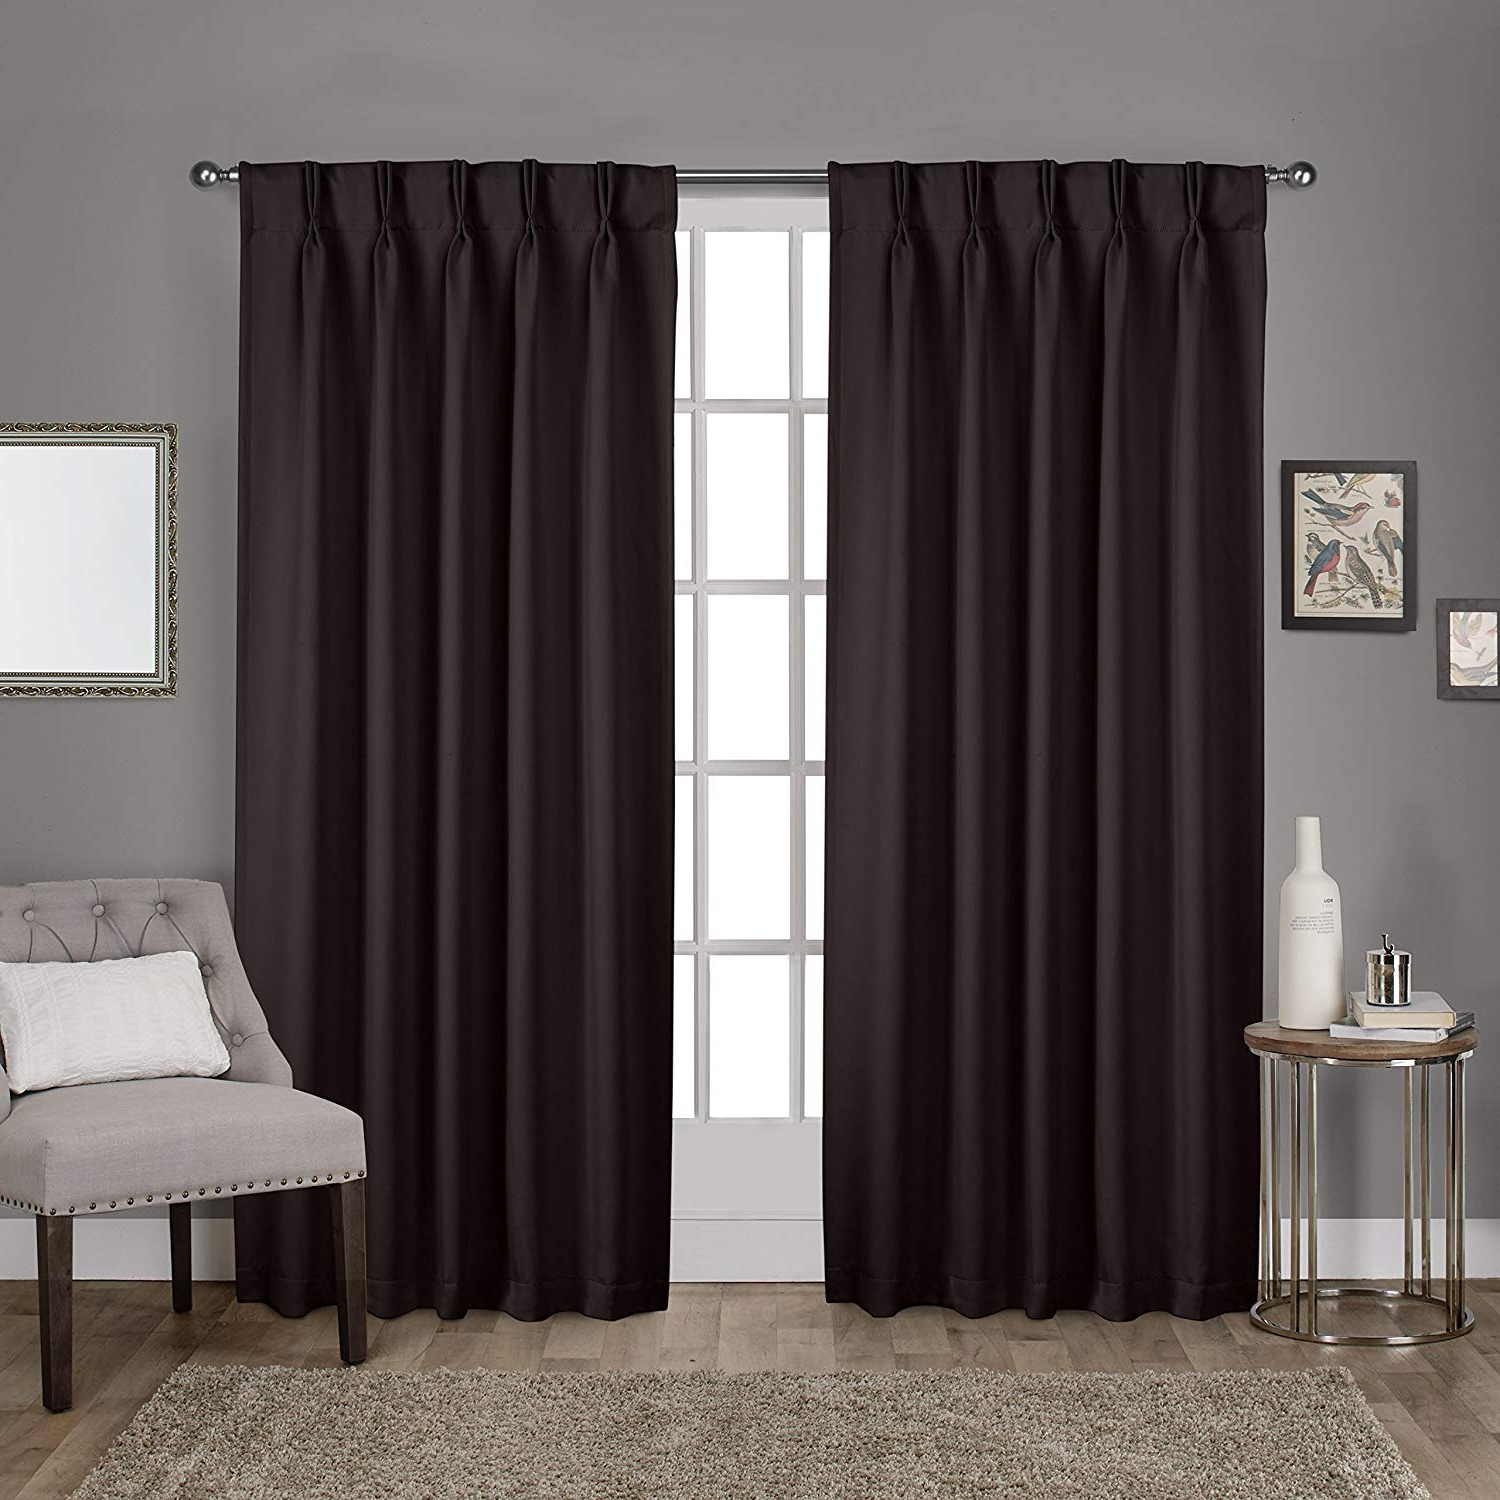 Most Popular Exclusive Home Curtains Sateen Pinch Pleat Woven Blackout Back Tab Window Curtain Panel Pair, Espresso, 52x96 With Regard To Sateen Woven Blackout Curtain Panel Pairs With Pinch Pleat Top (View 2 of 20)